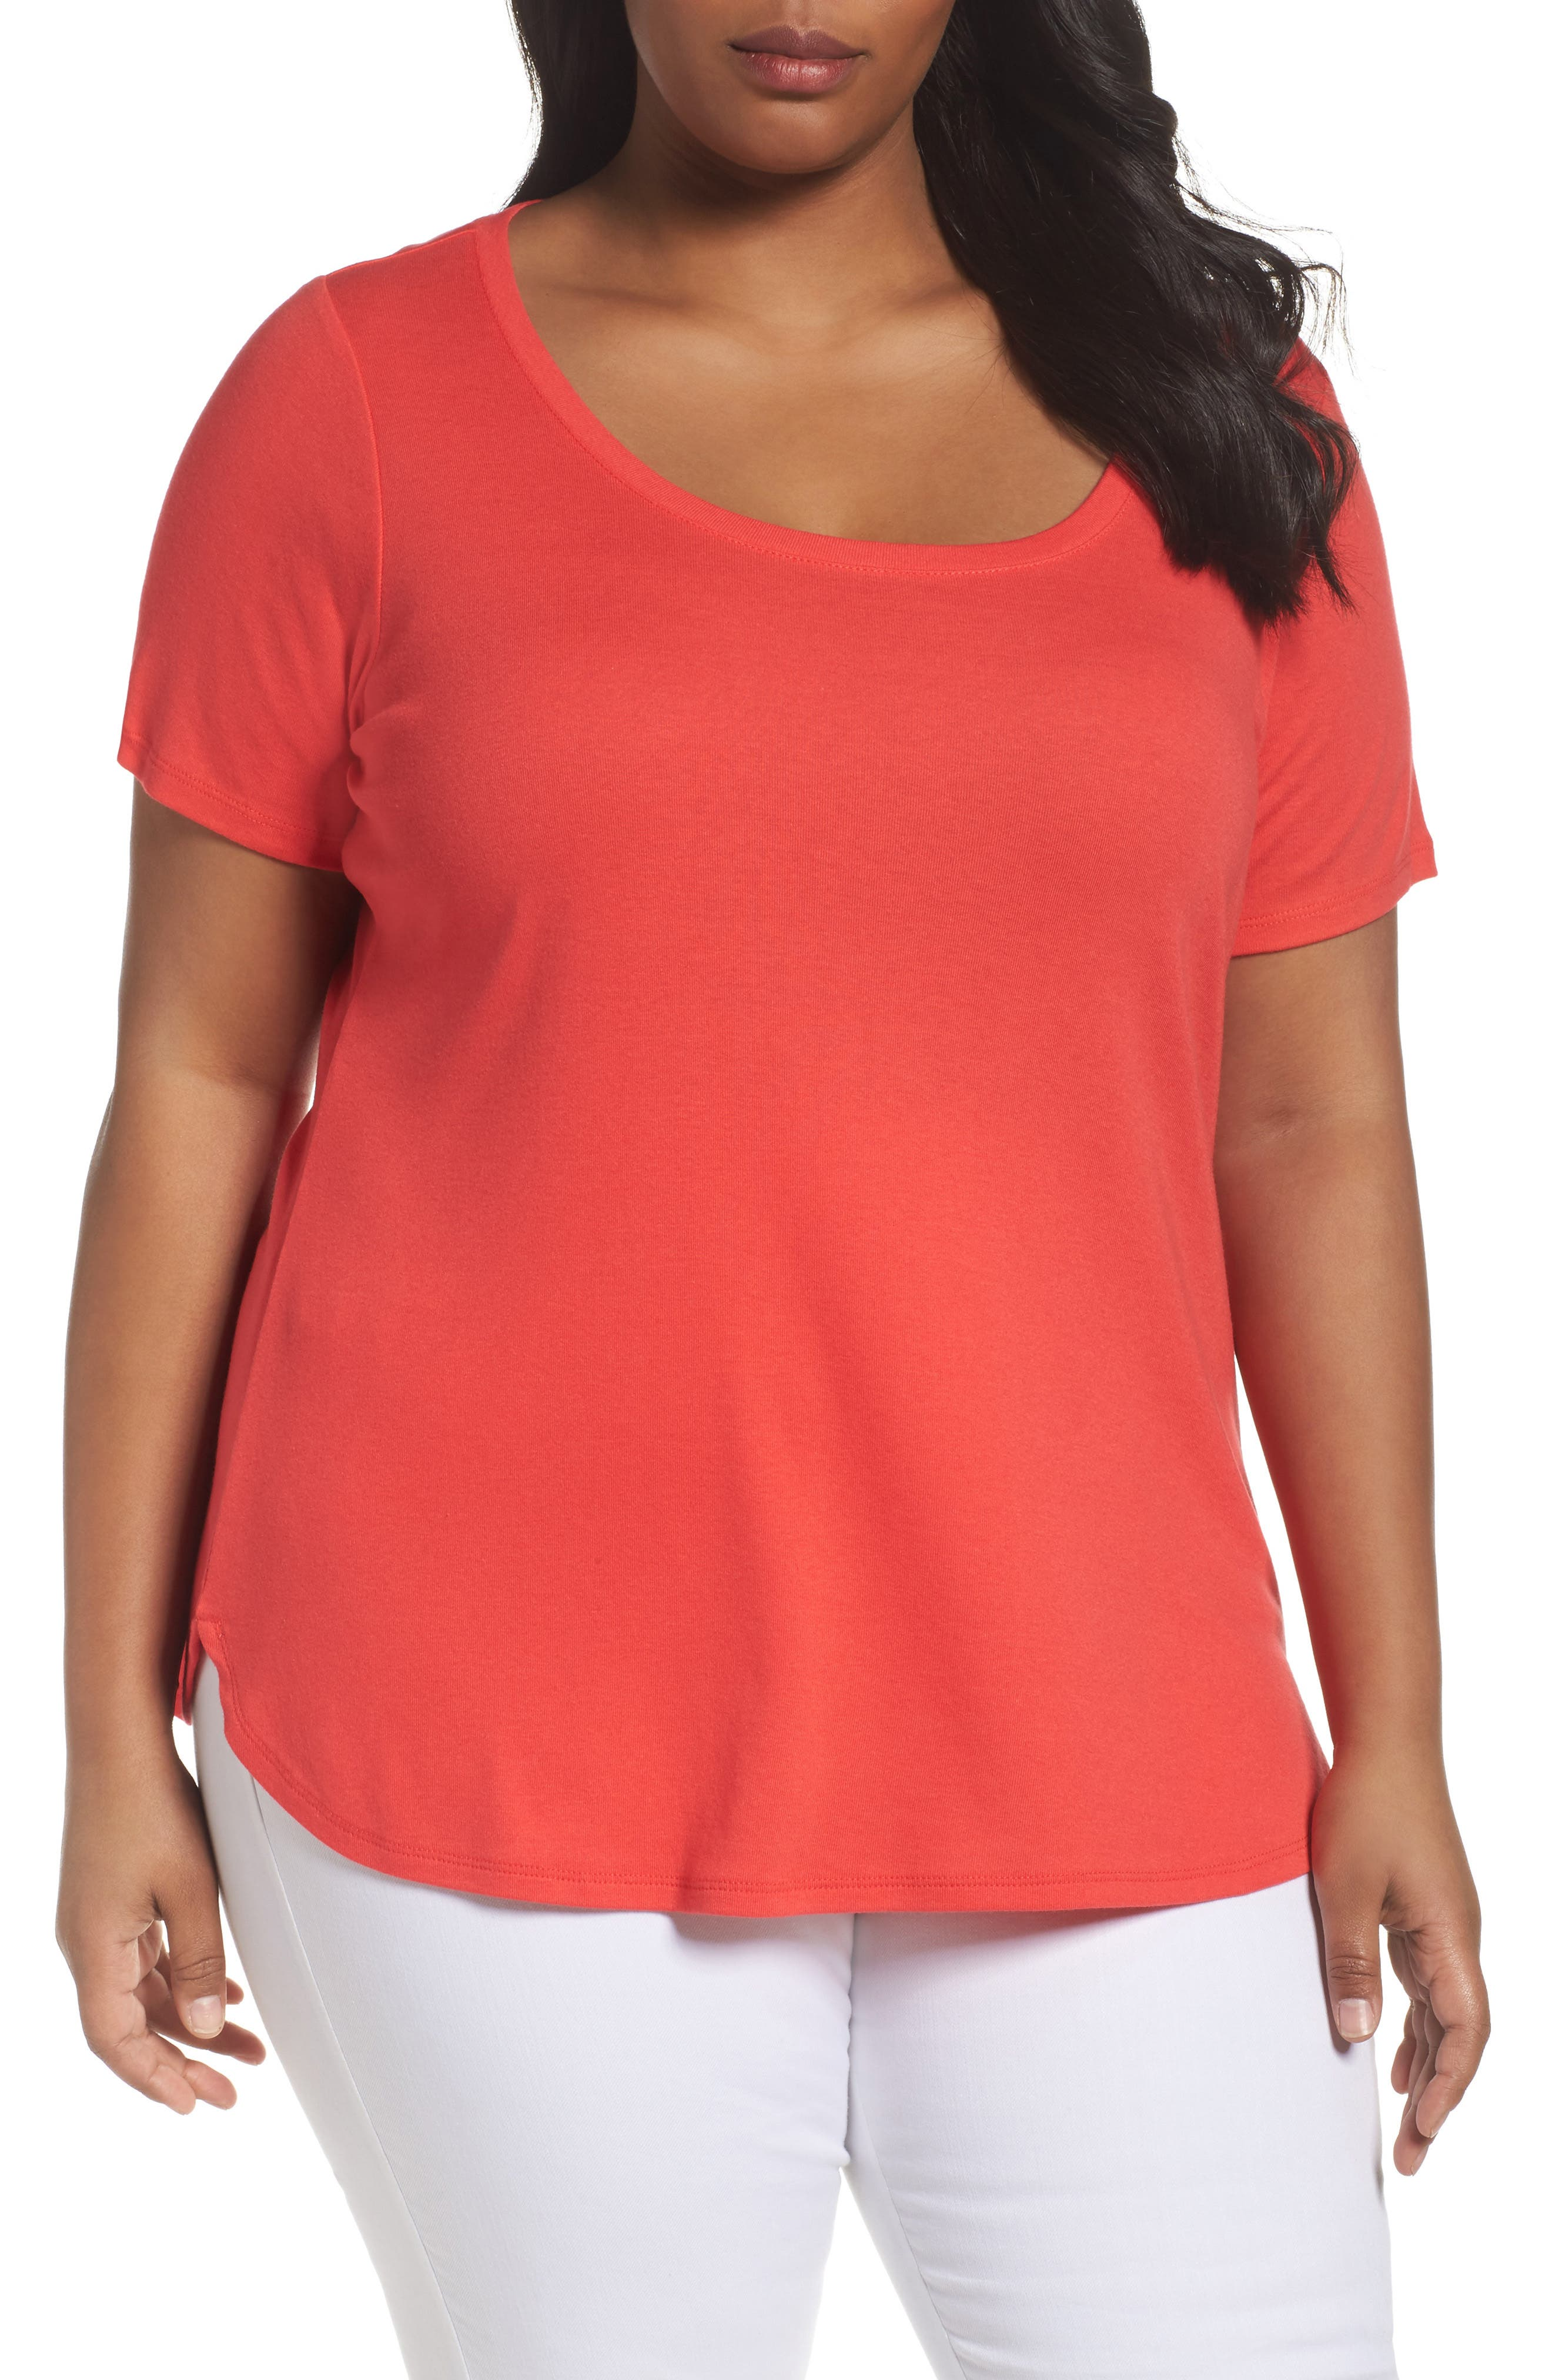 Main Image - Sejour Scoop Neck Tee (Plus Size)